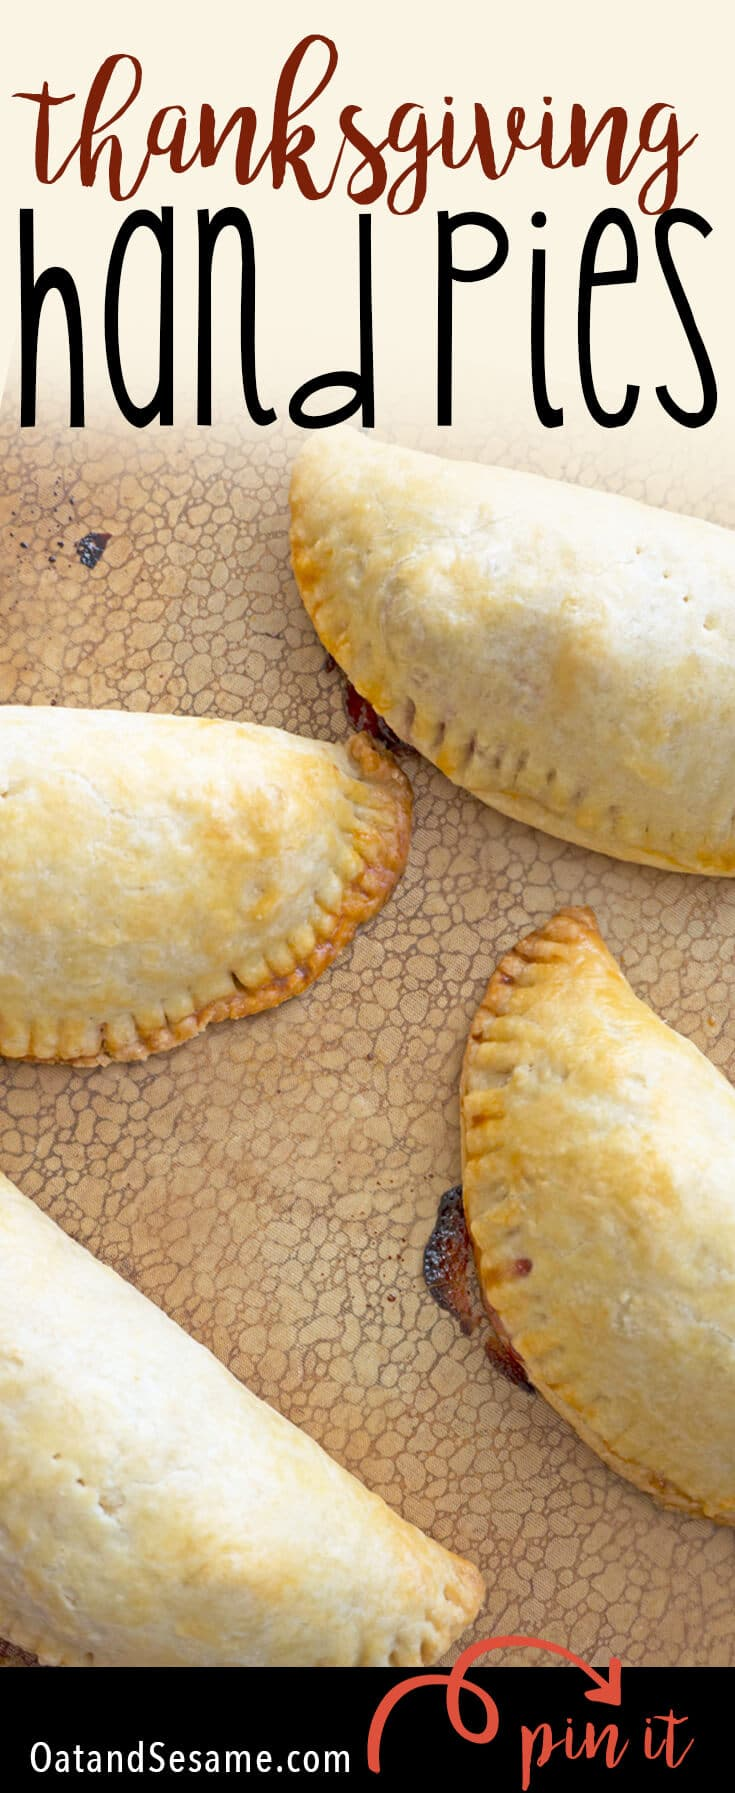 Thanksgiving Hand Pies are stuffed with all the leftover ingredients from Thanksgiving! One simple step before Thanksgiving will have you prepped and ready to roll these out and load them up with everything you've got left! | #THANKSGIVING | #LEFTOVERS | #HANDPIES | #Recipes at OatandSesame.com